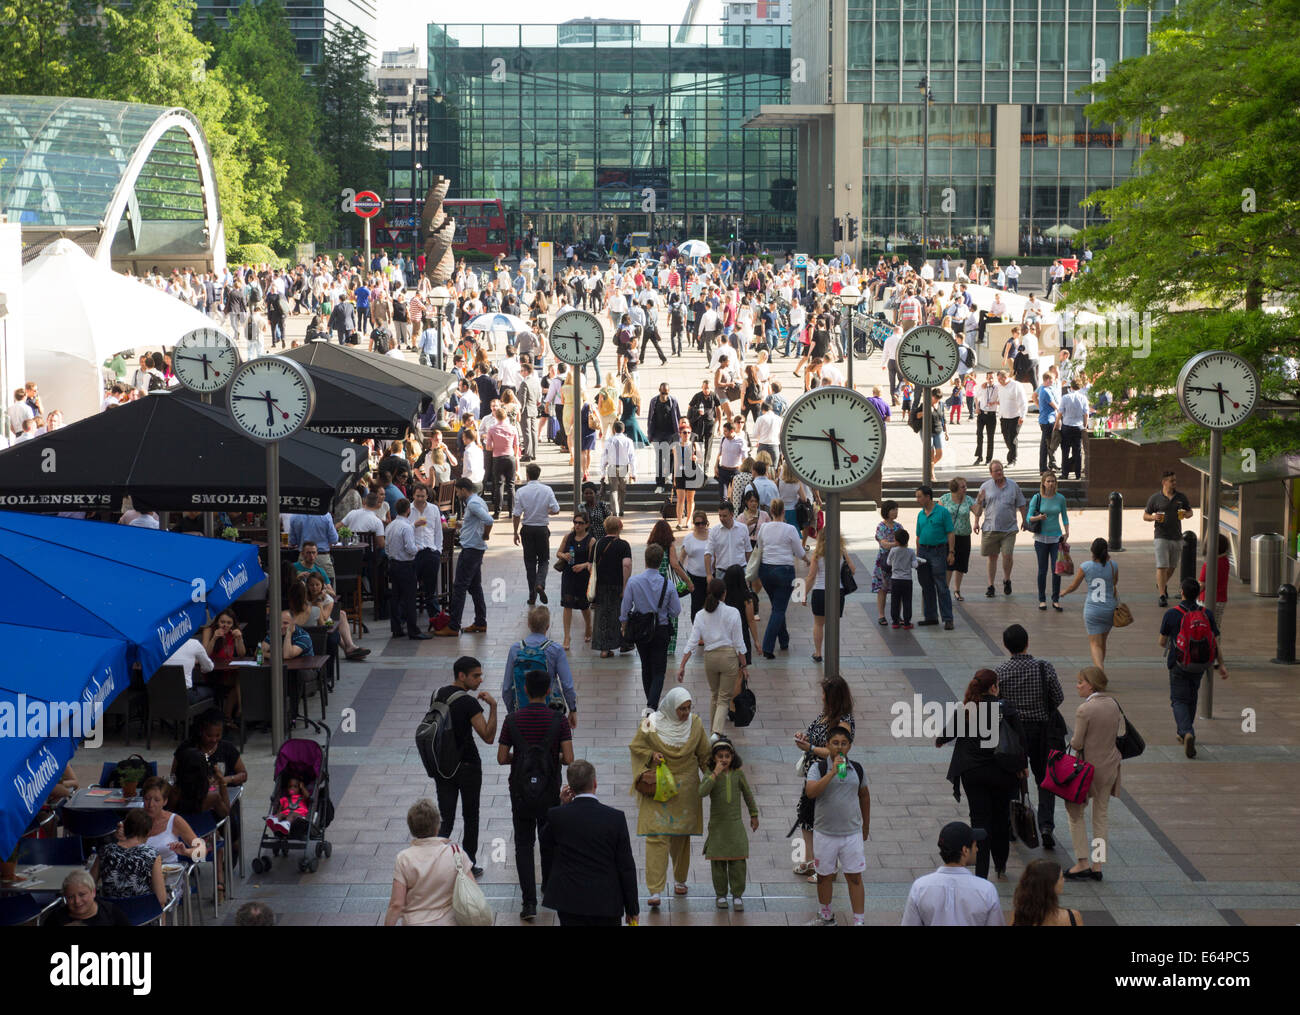 Evening Rush Hour - Canary Wharf - London Stock Photo